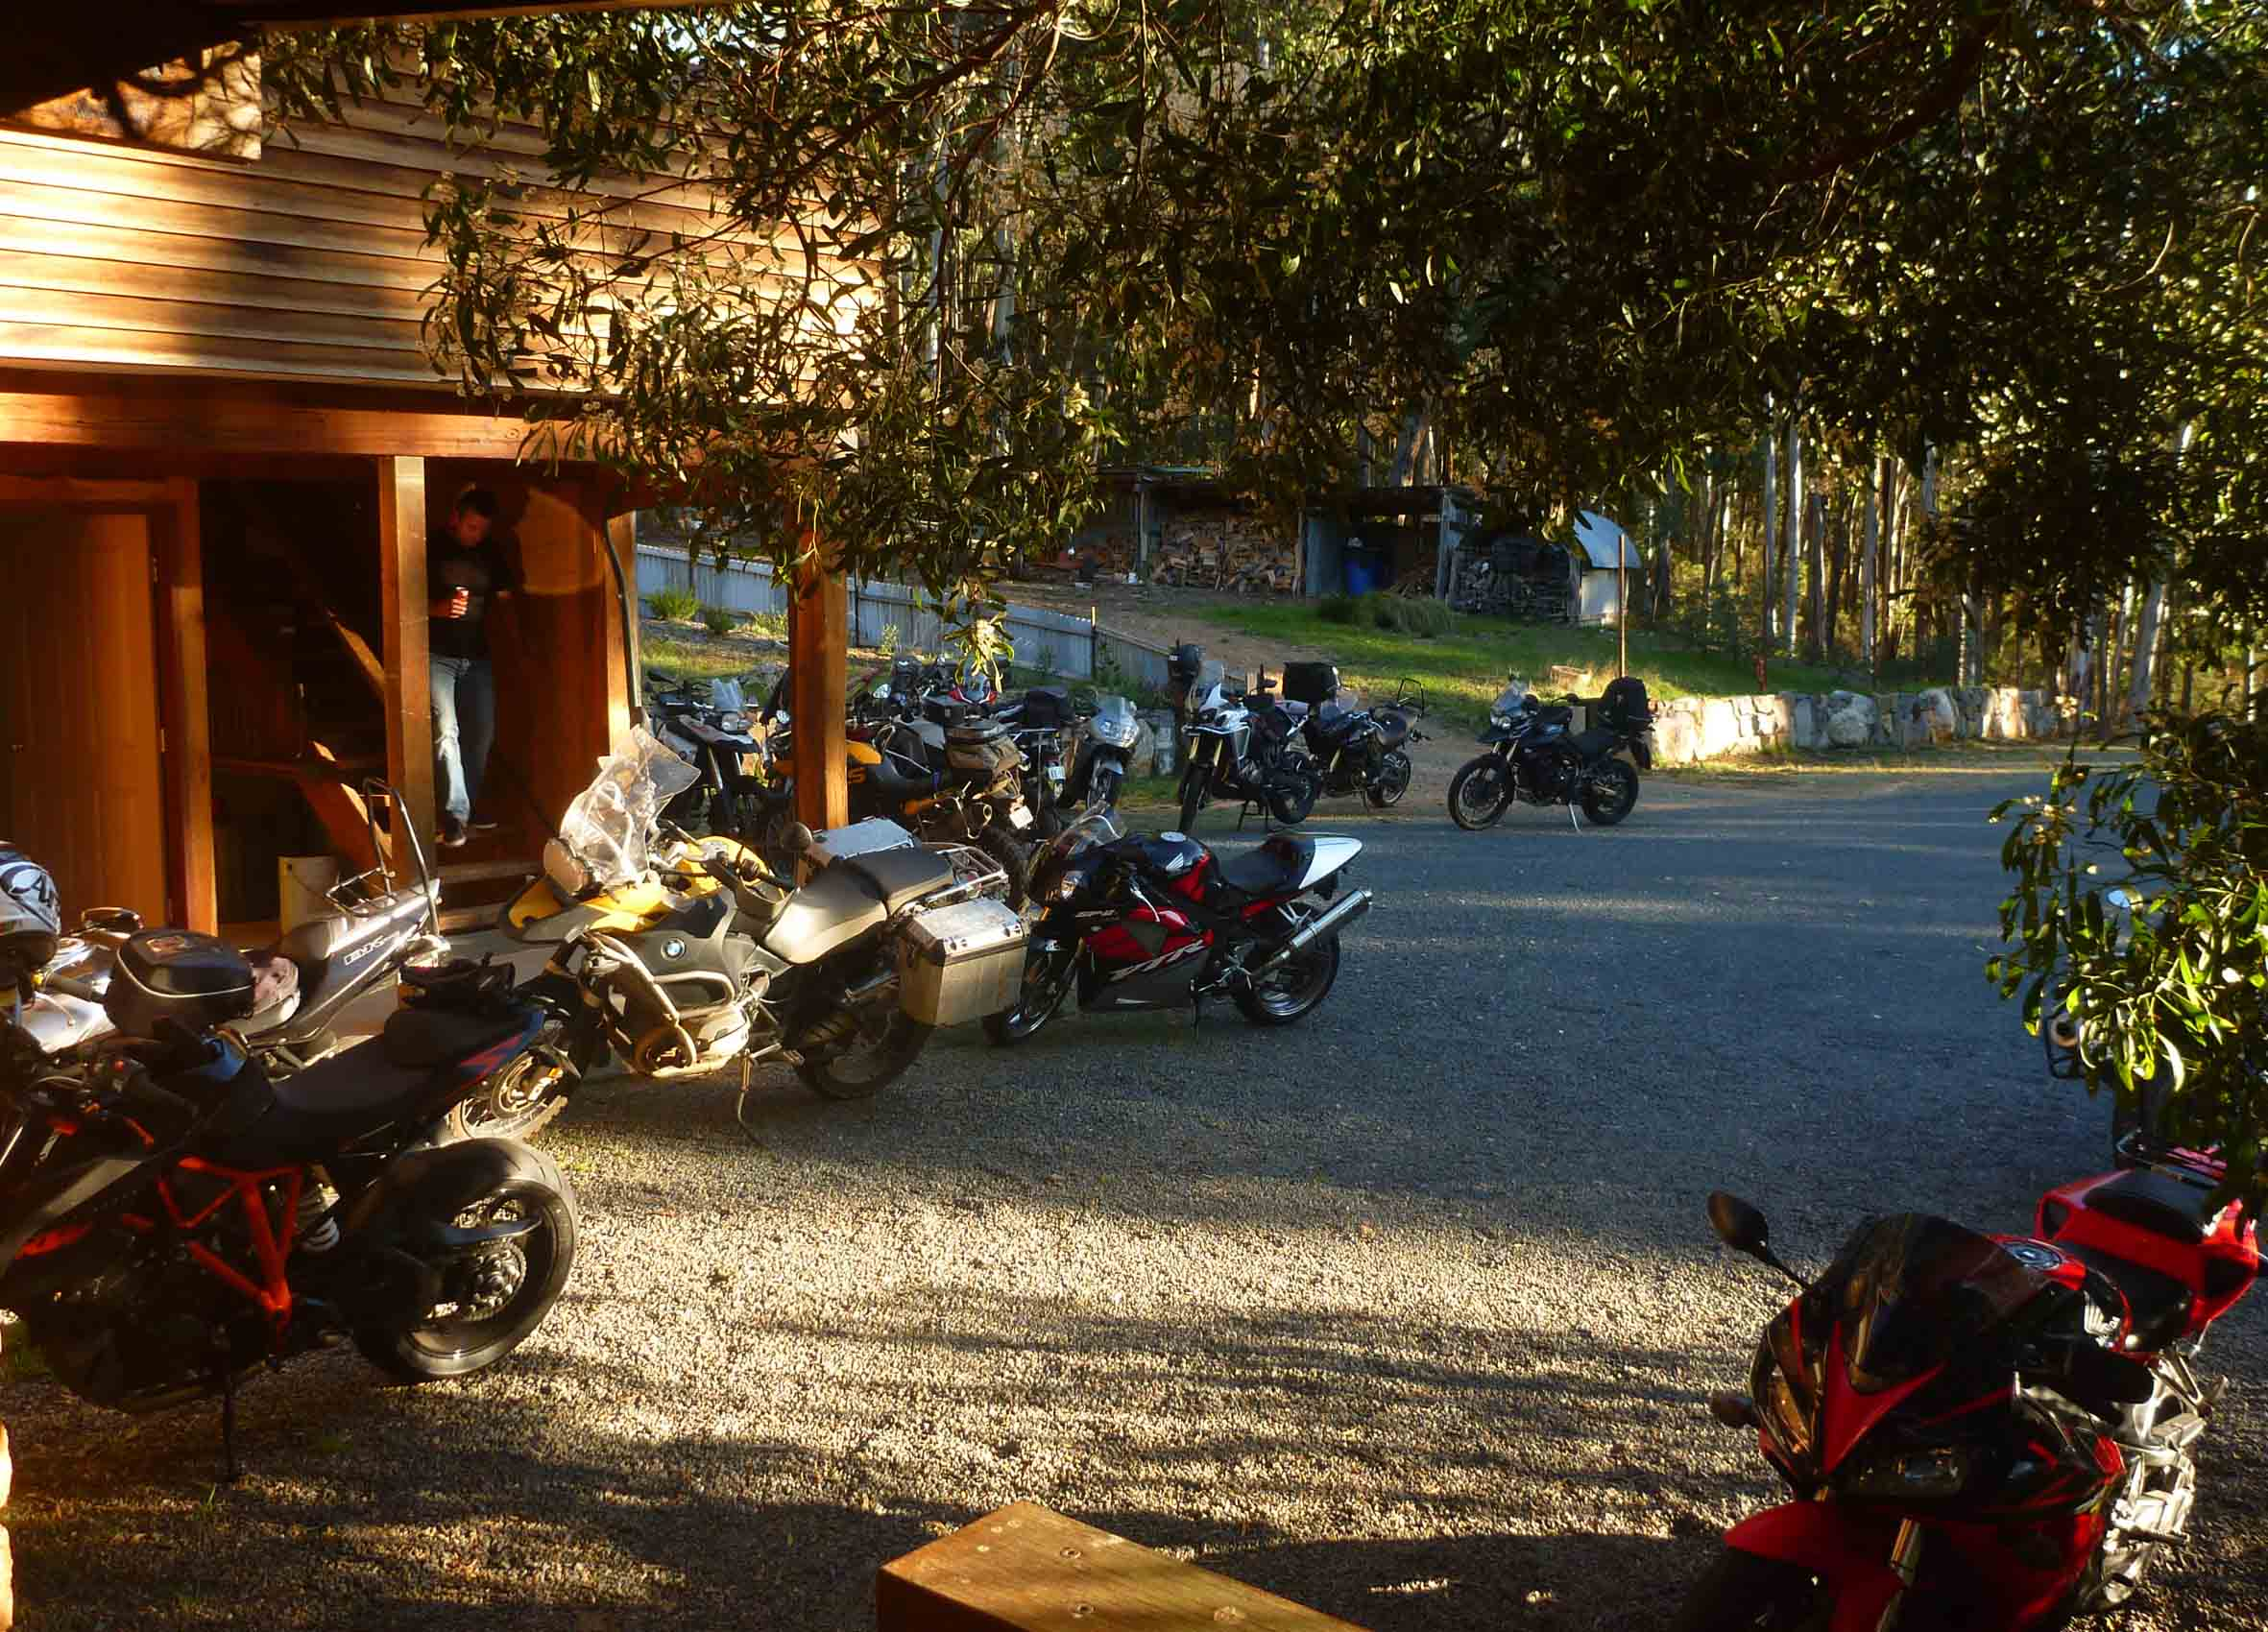 Motorbike Touring - Glen Wills has hosted motorbike touring groups travelling along the Omeo Highway. It's a great place to stop in to rest after a long day on the road.